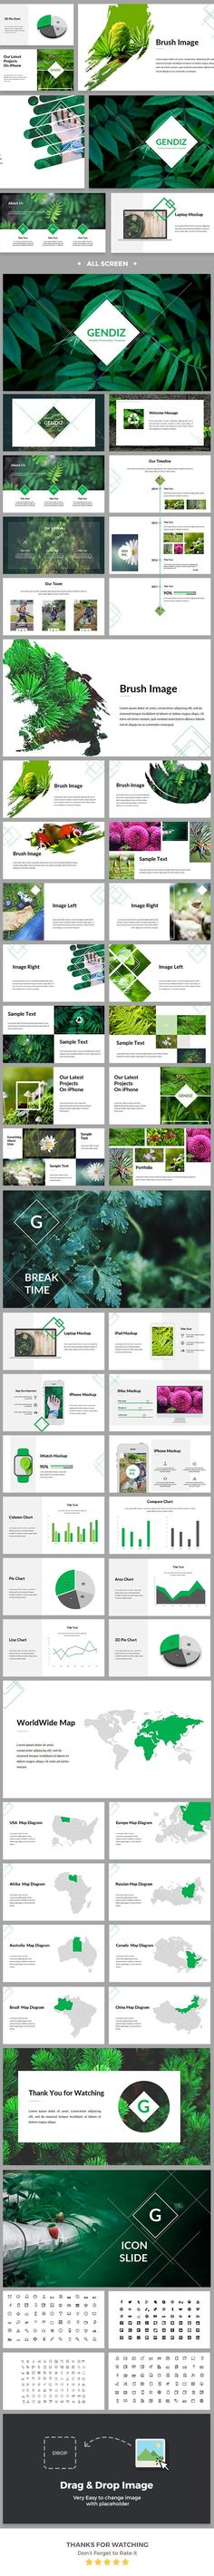 Gendiz Powerpoint Template - Business PowerPoint Templates